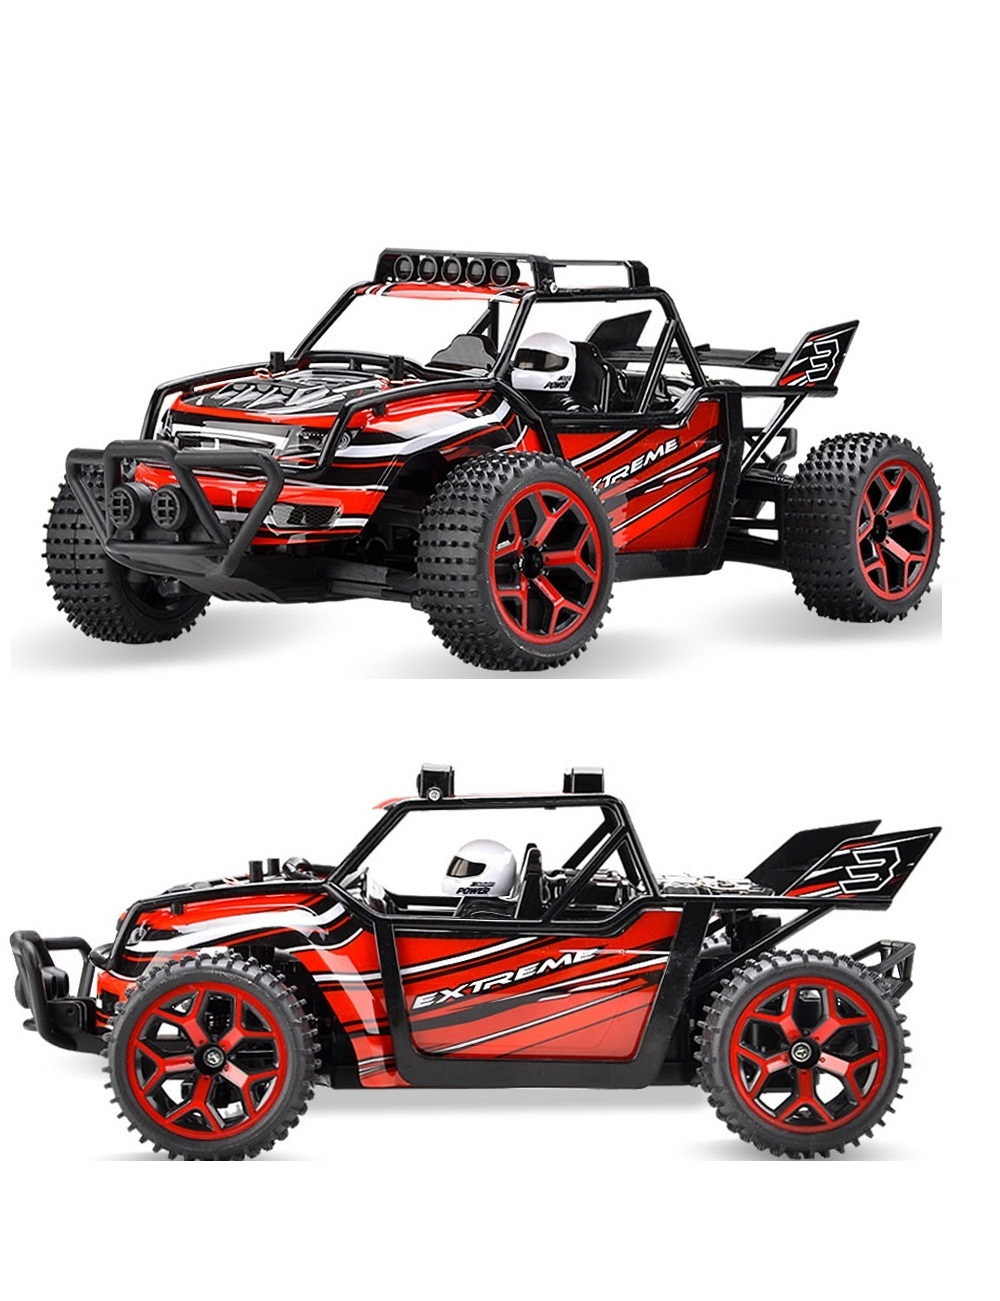 YUKALA 2017 New 1:18 RC Car 4WD Drift Remote Control Car Radio Controlled Machine Highspeed Micro Racing Cars Model Toys